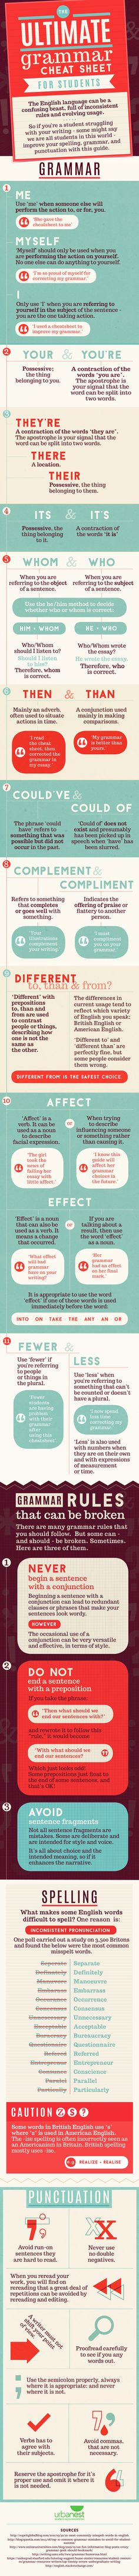 The Ultimate English Grammar Cheat Sheet For Students - @visualistan